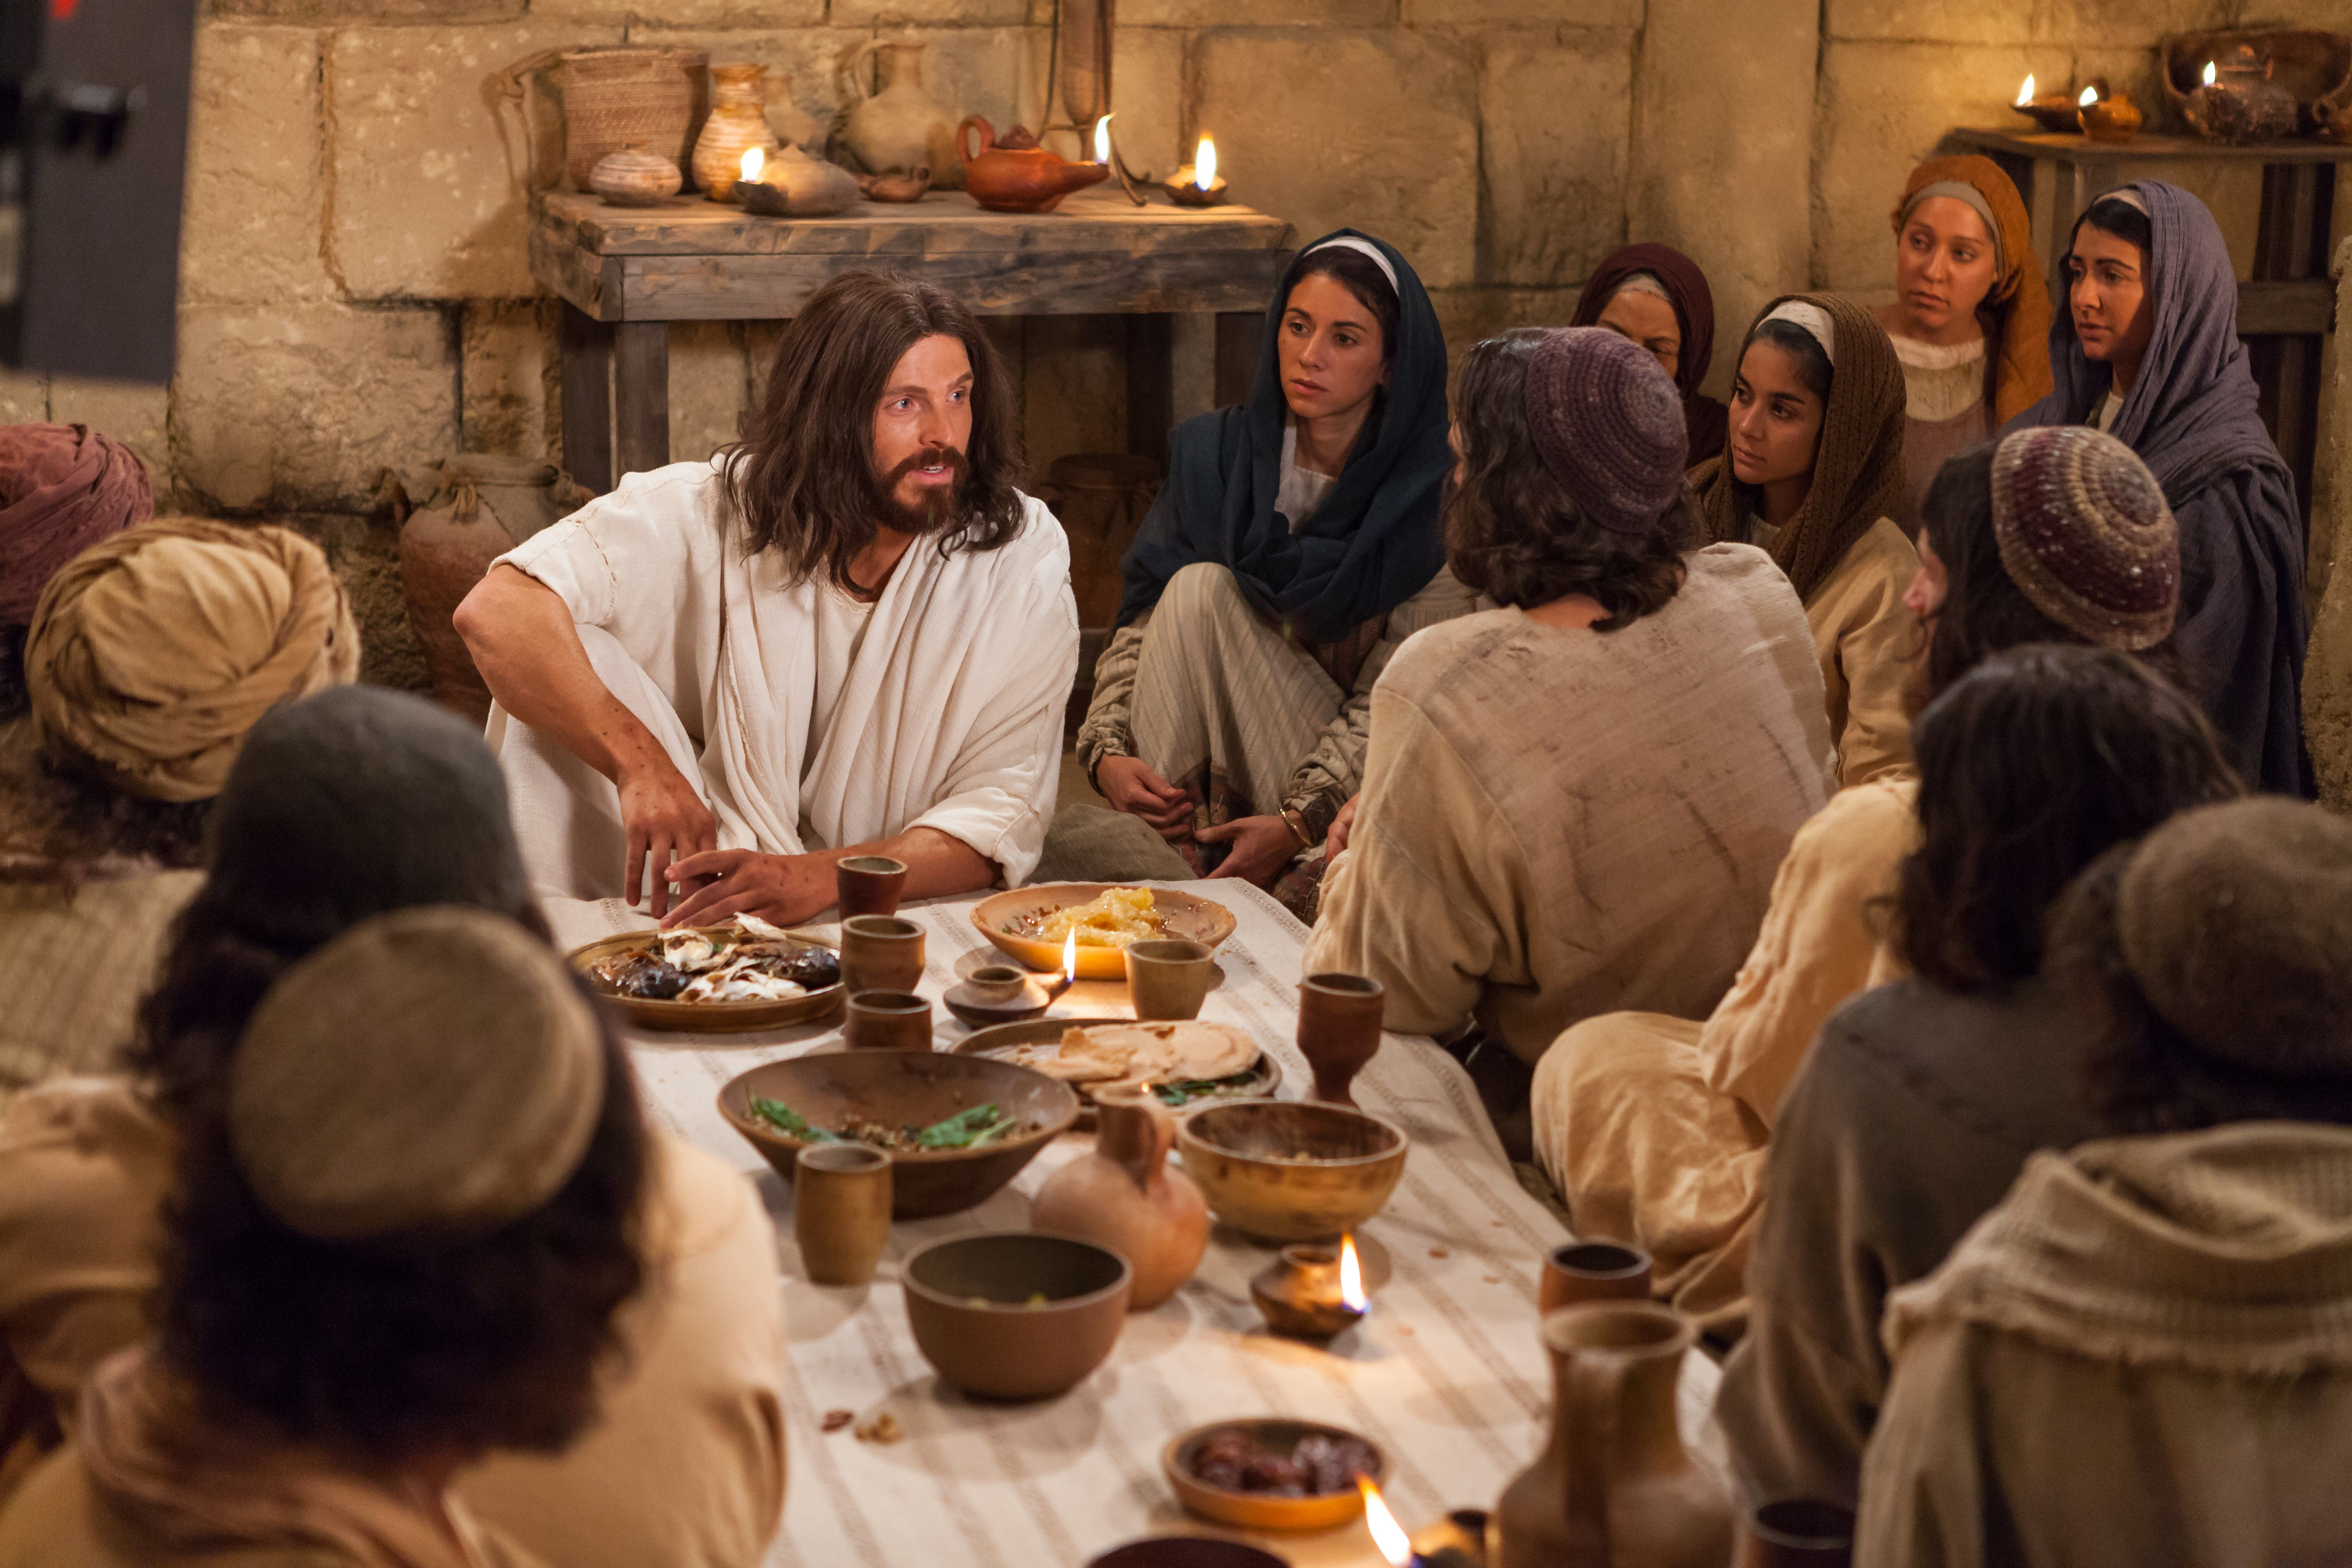 The resurrected Jesus appears and shows Himself to the Apostles.